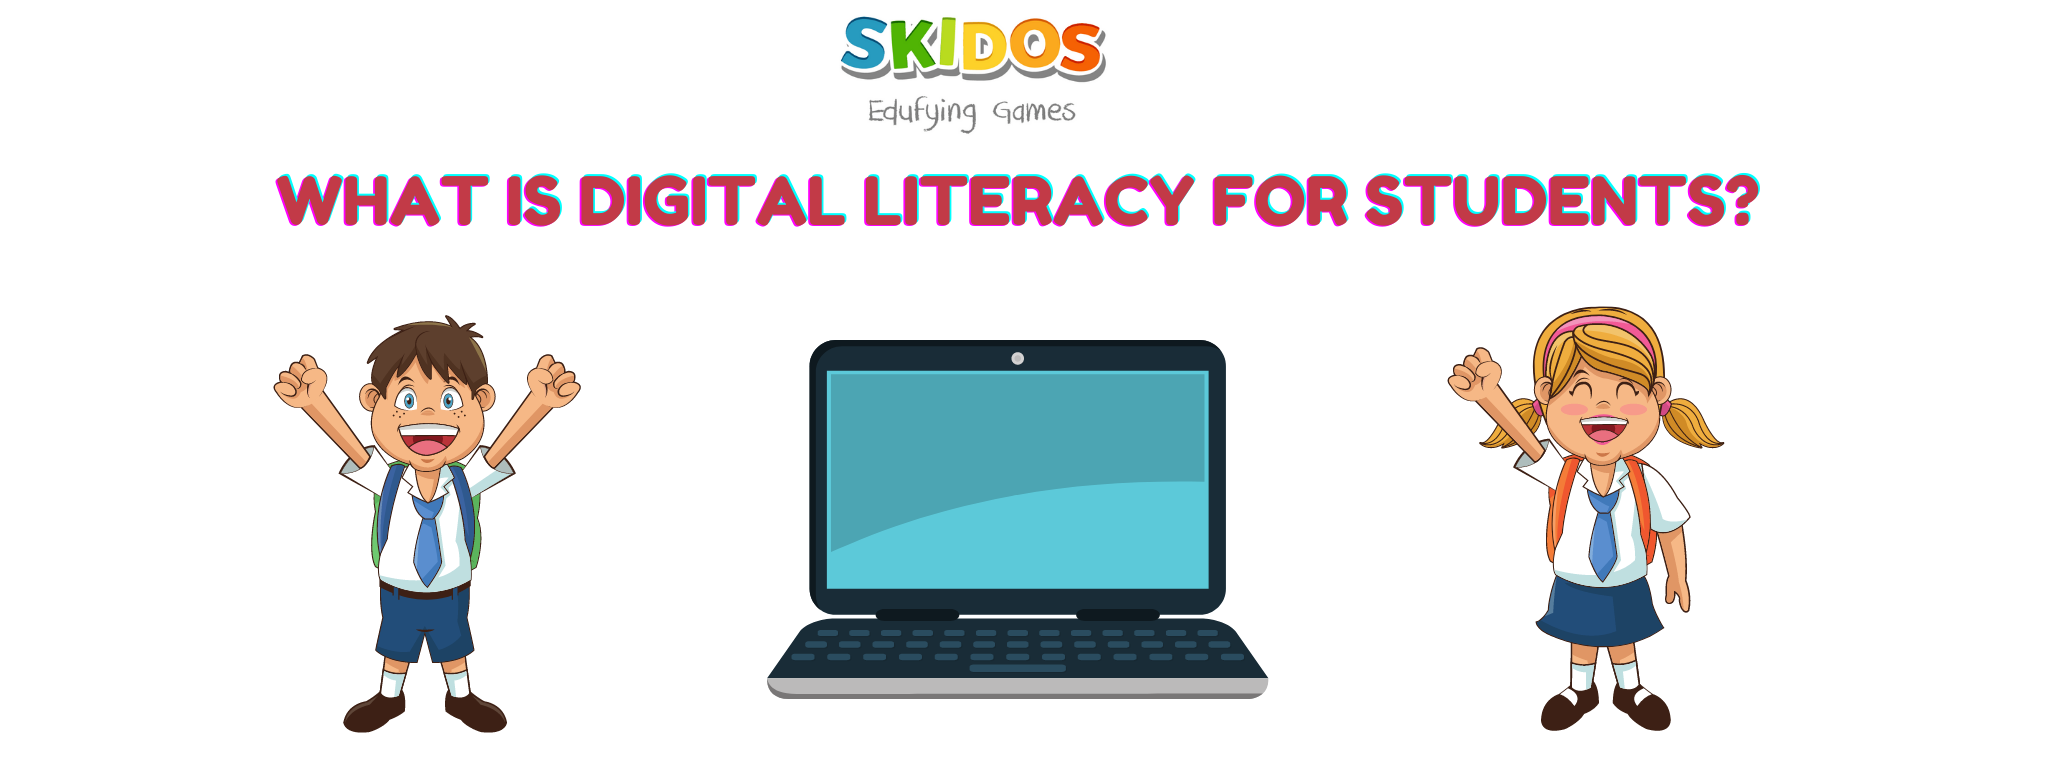 Digital literacy for Students: Tips, Resources to Improve! [New]